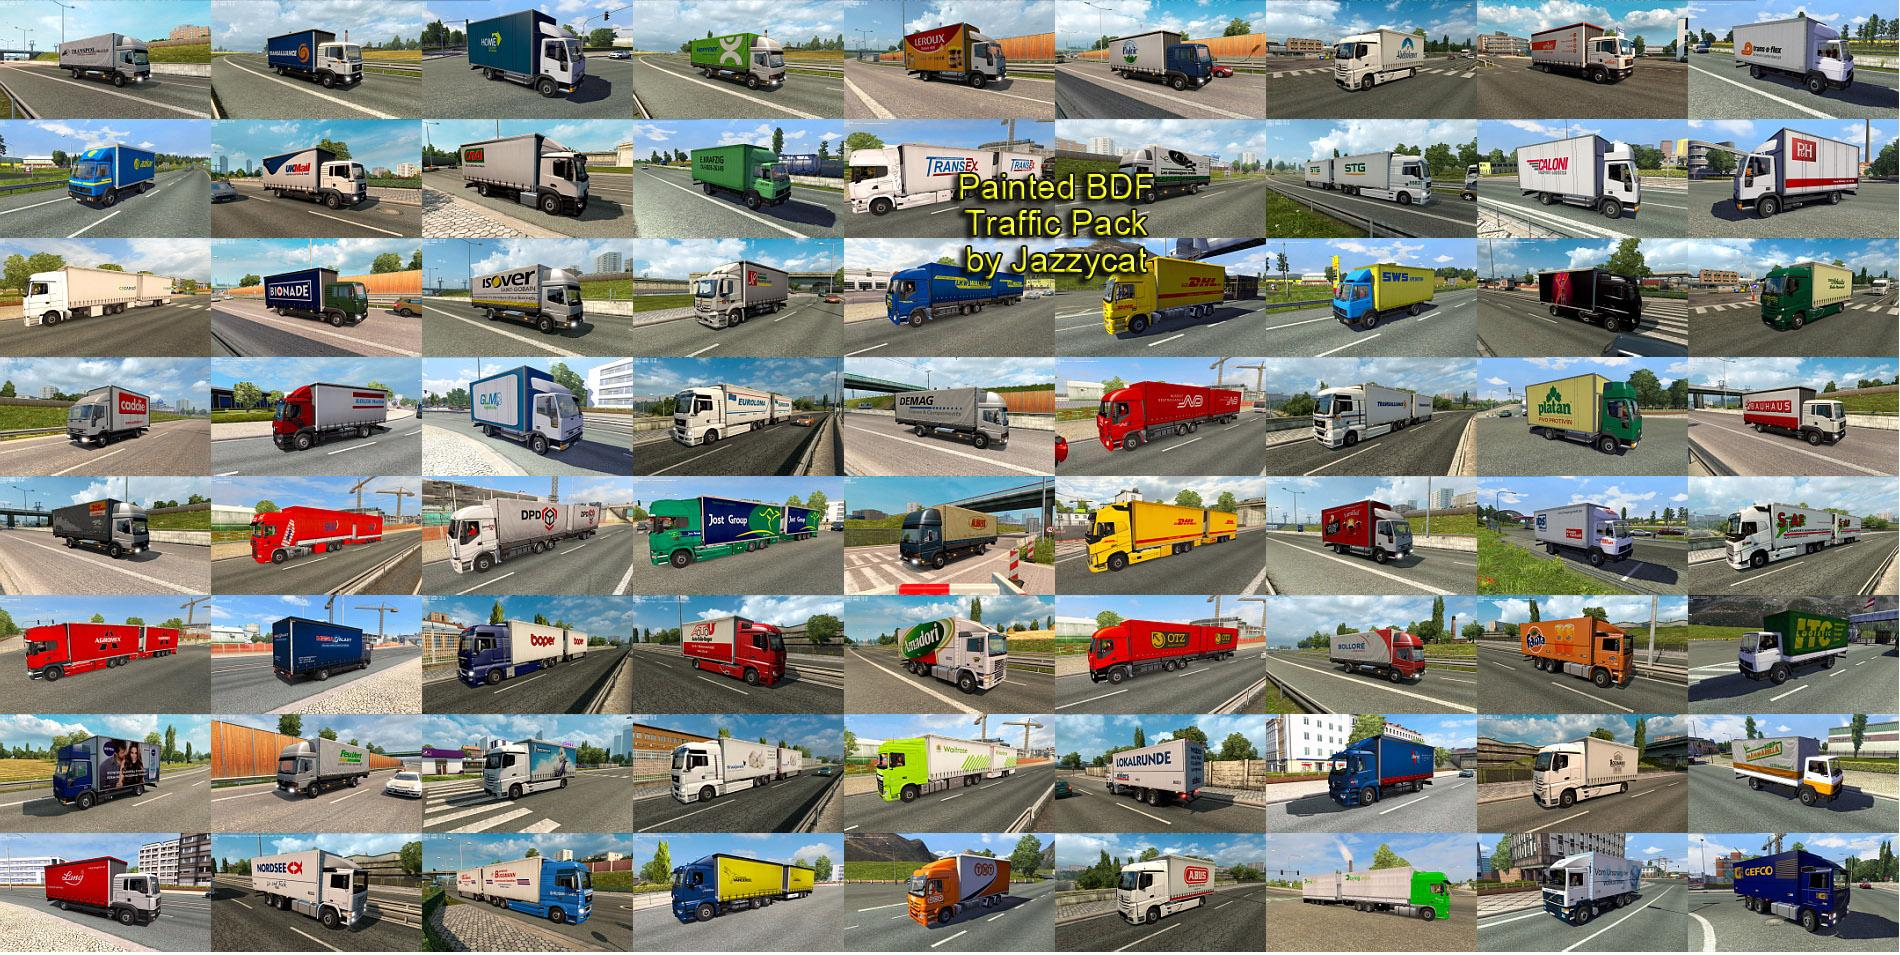 PAINTED BDF TRAFFIC PACK BY JAZZYCAT V1 7 MOD FOR ETS2